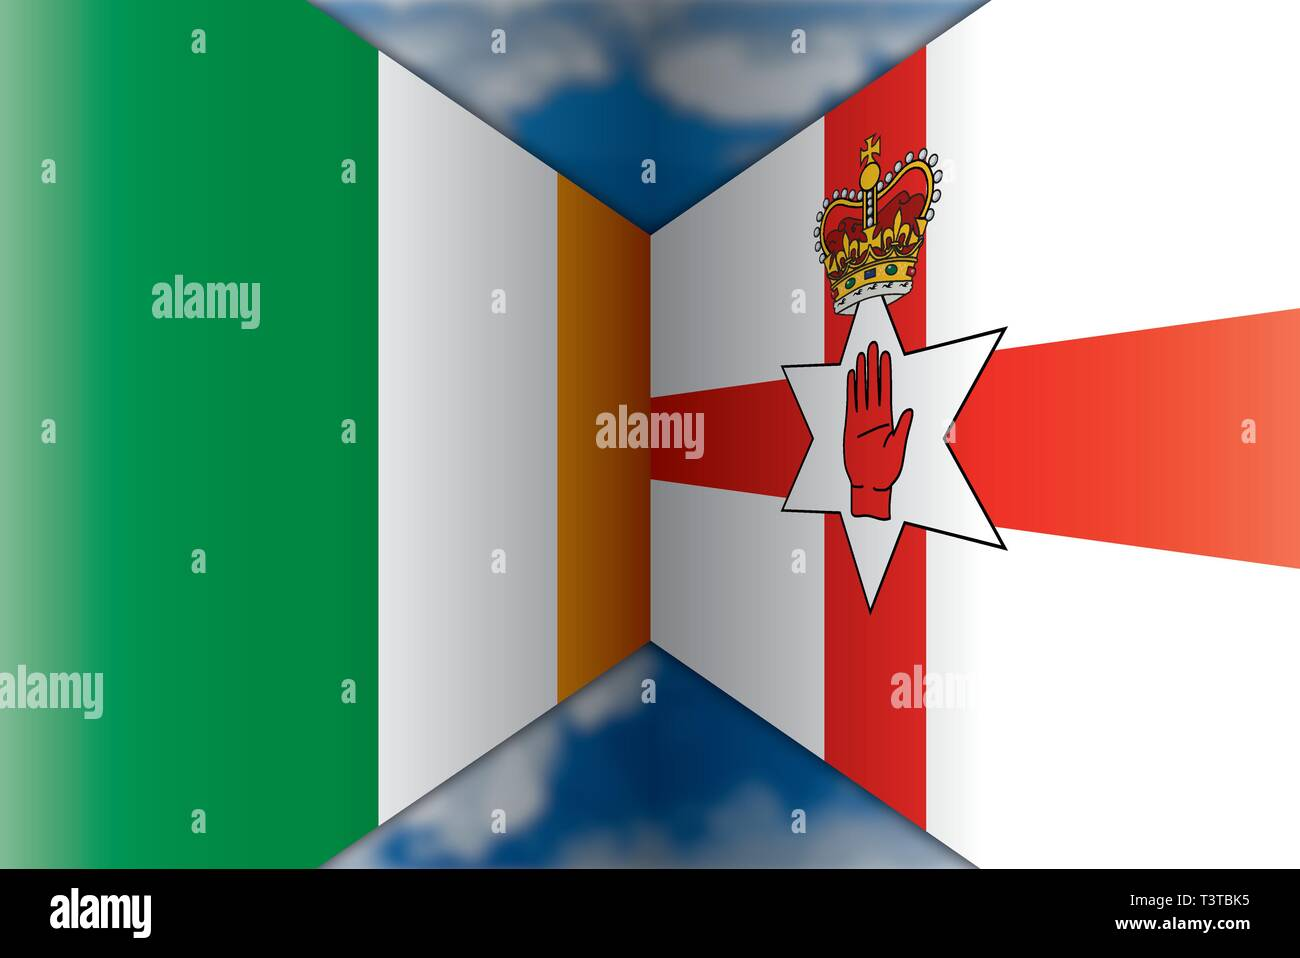 Eire vs Northern Ireland flags, vector illustration - Stock Vector